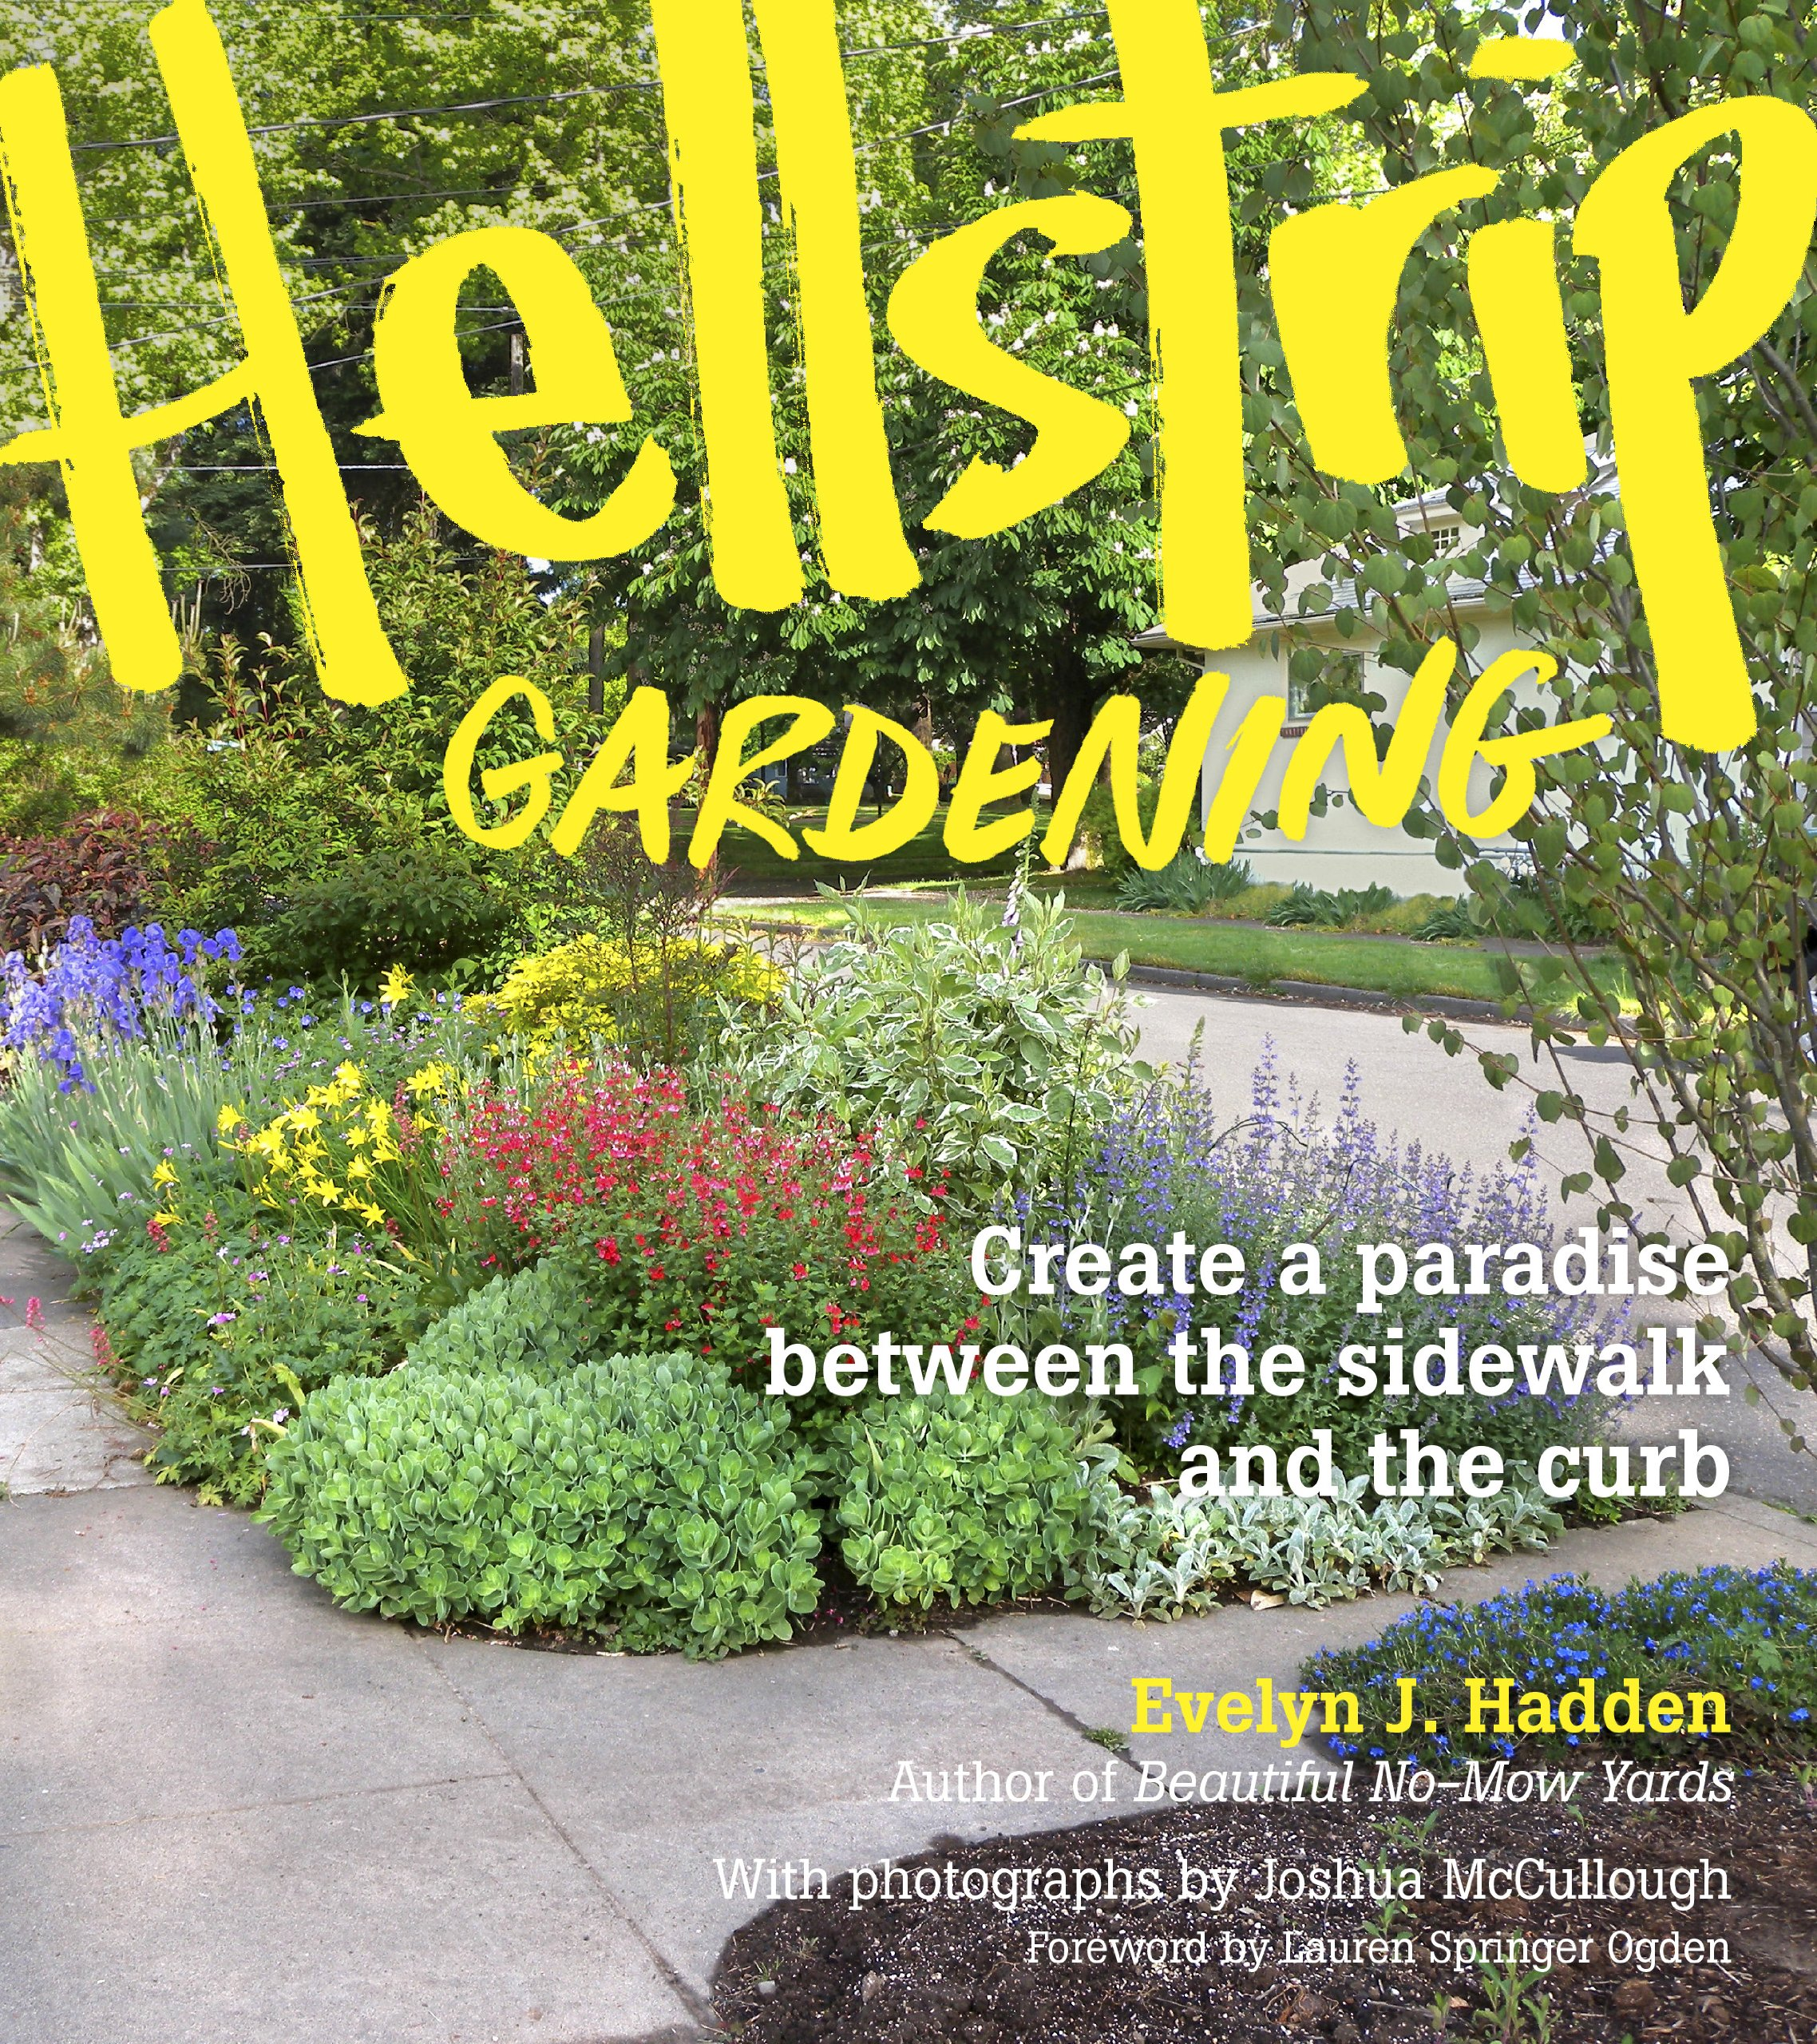 Hellstrip Gardening: Create A Paradise Between The Sidewalk And The Curb:  Evelyn Hadden, Joshua McCullough: 9781604693324: Amazon.com: Books